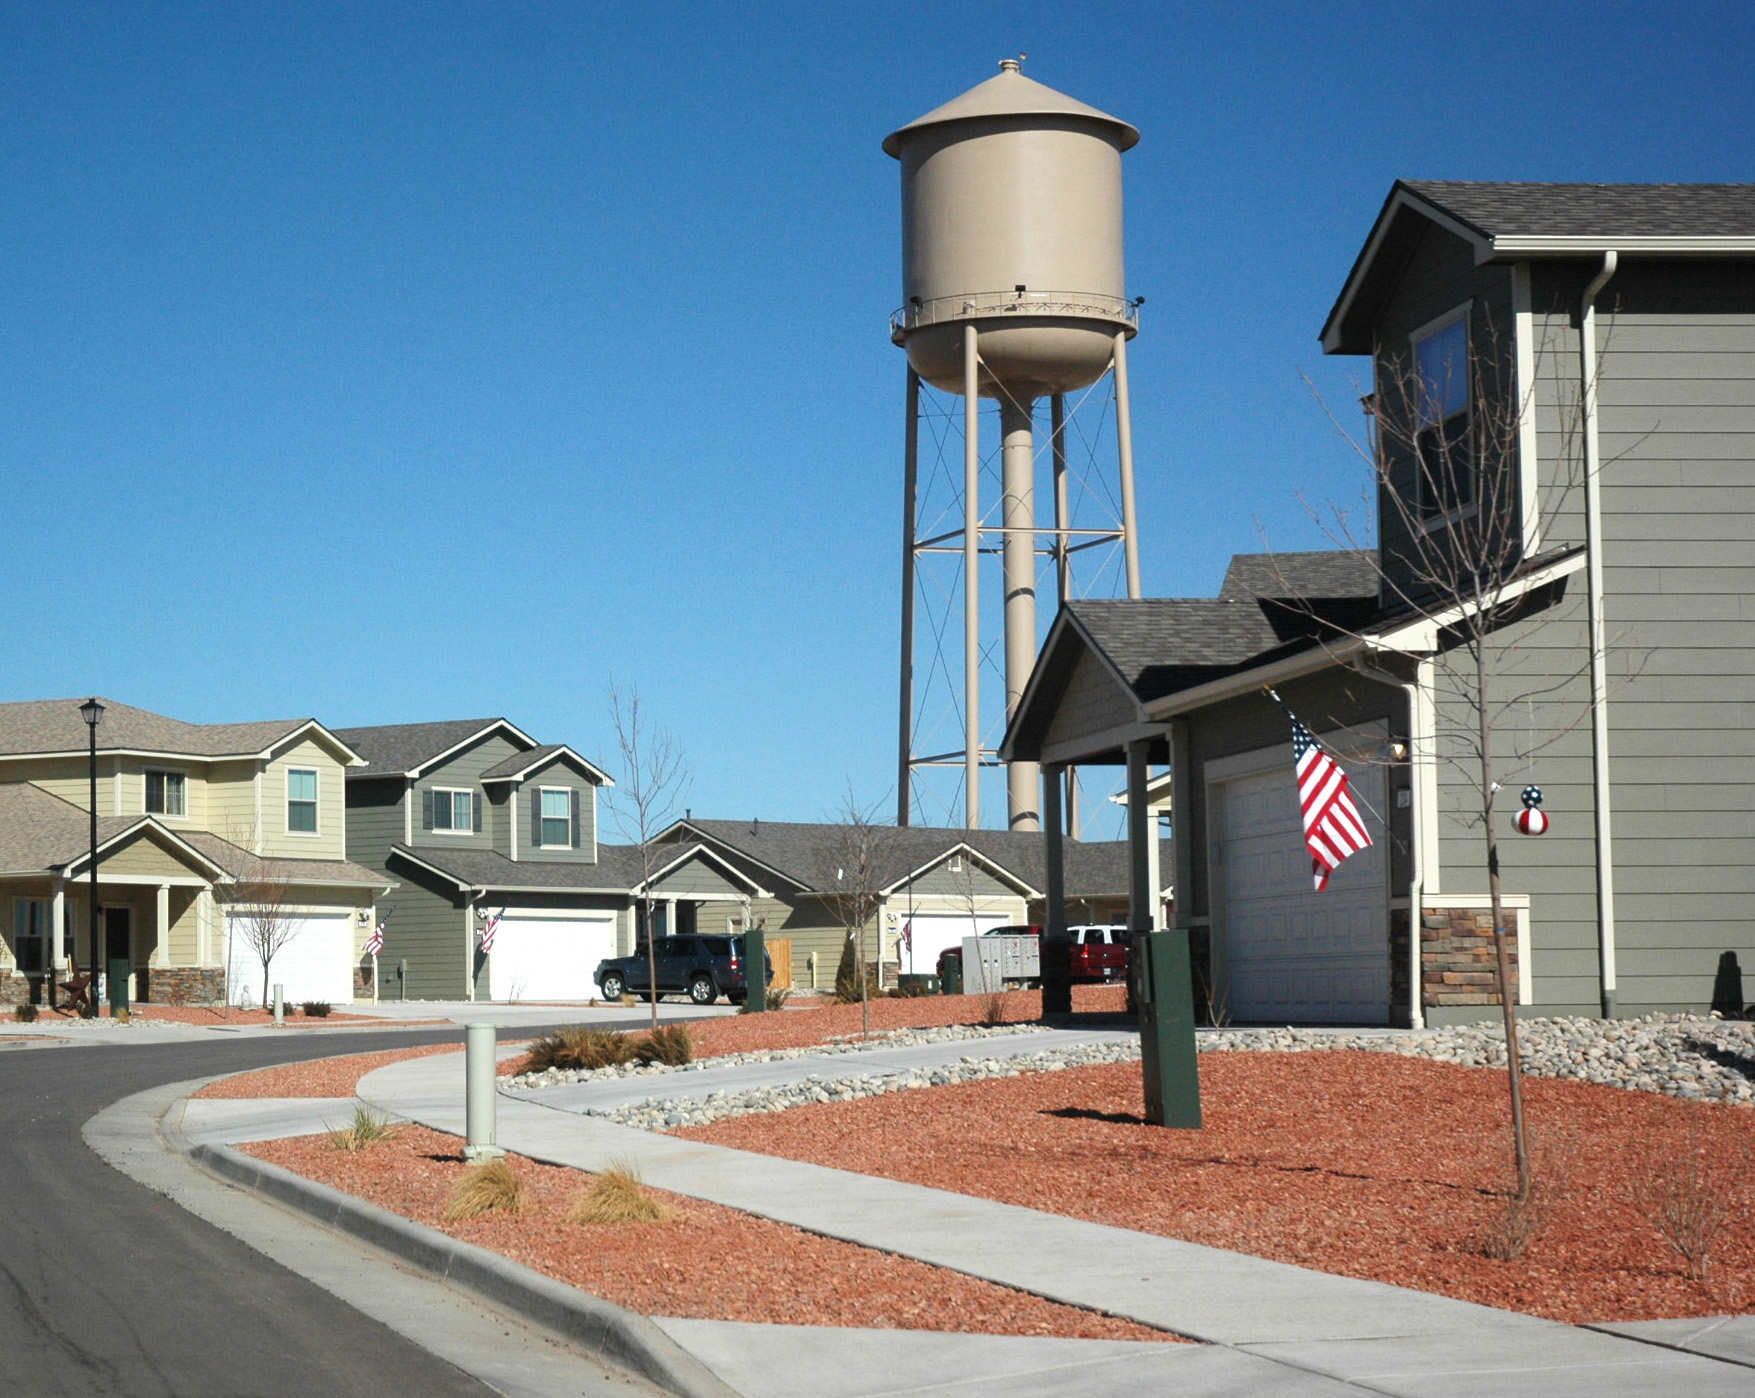 A water tower looms above a curving street of mostly two-story suburban-style homes in neutral colors with gravel front yards.